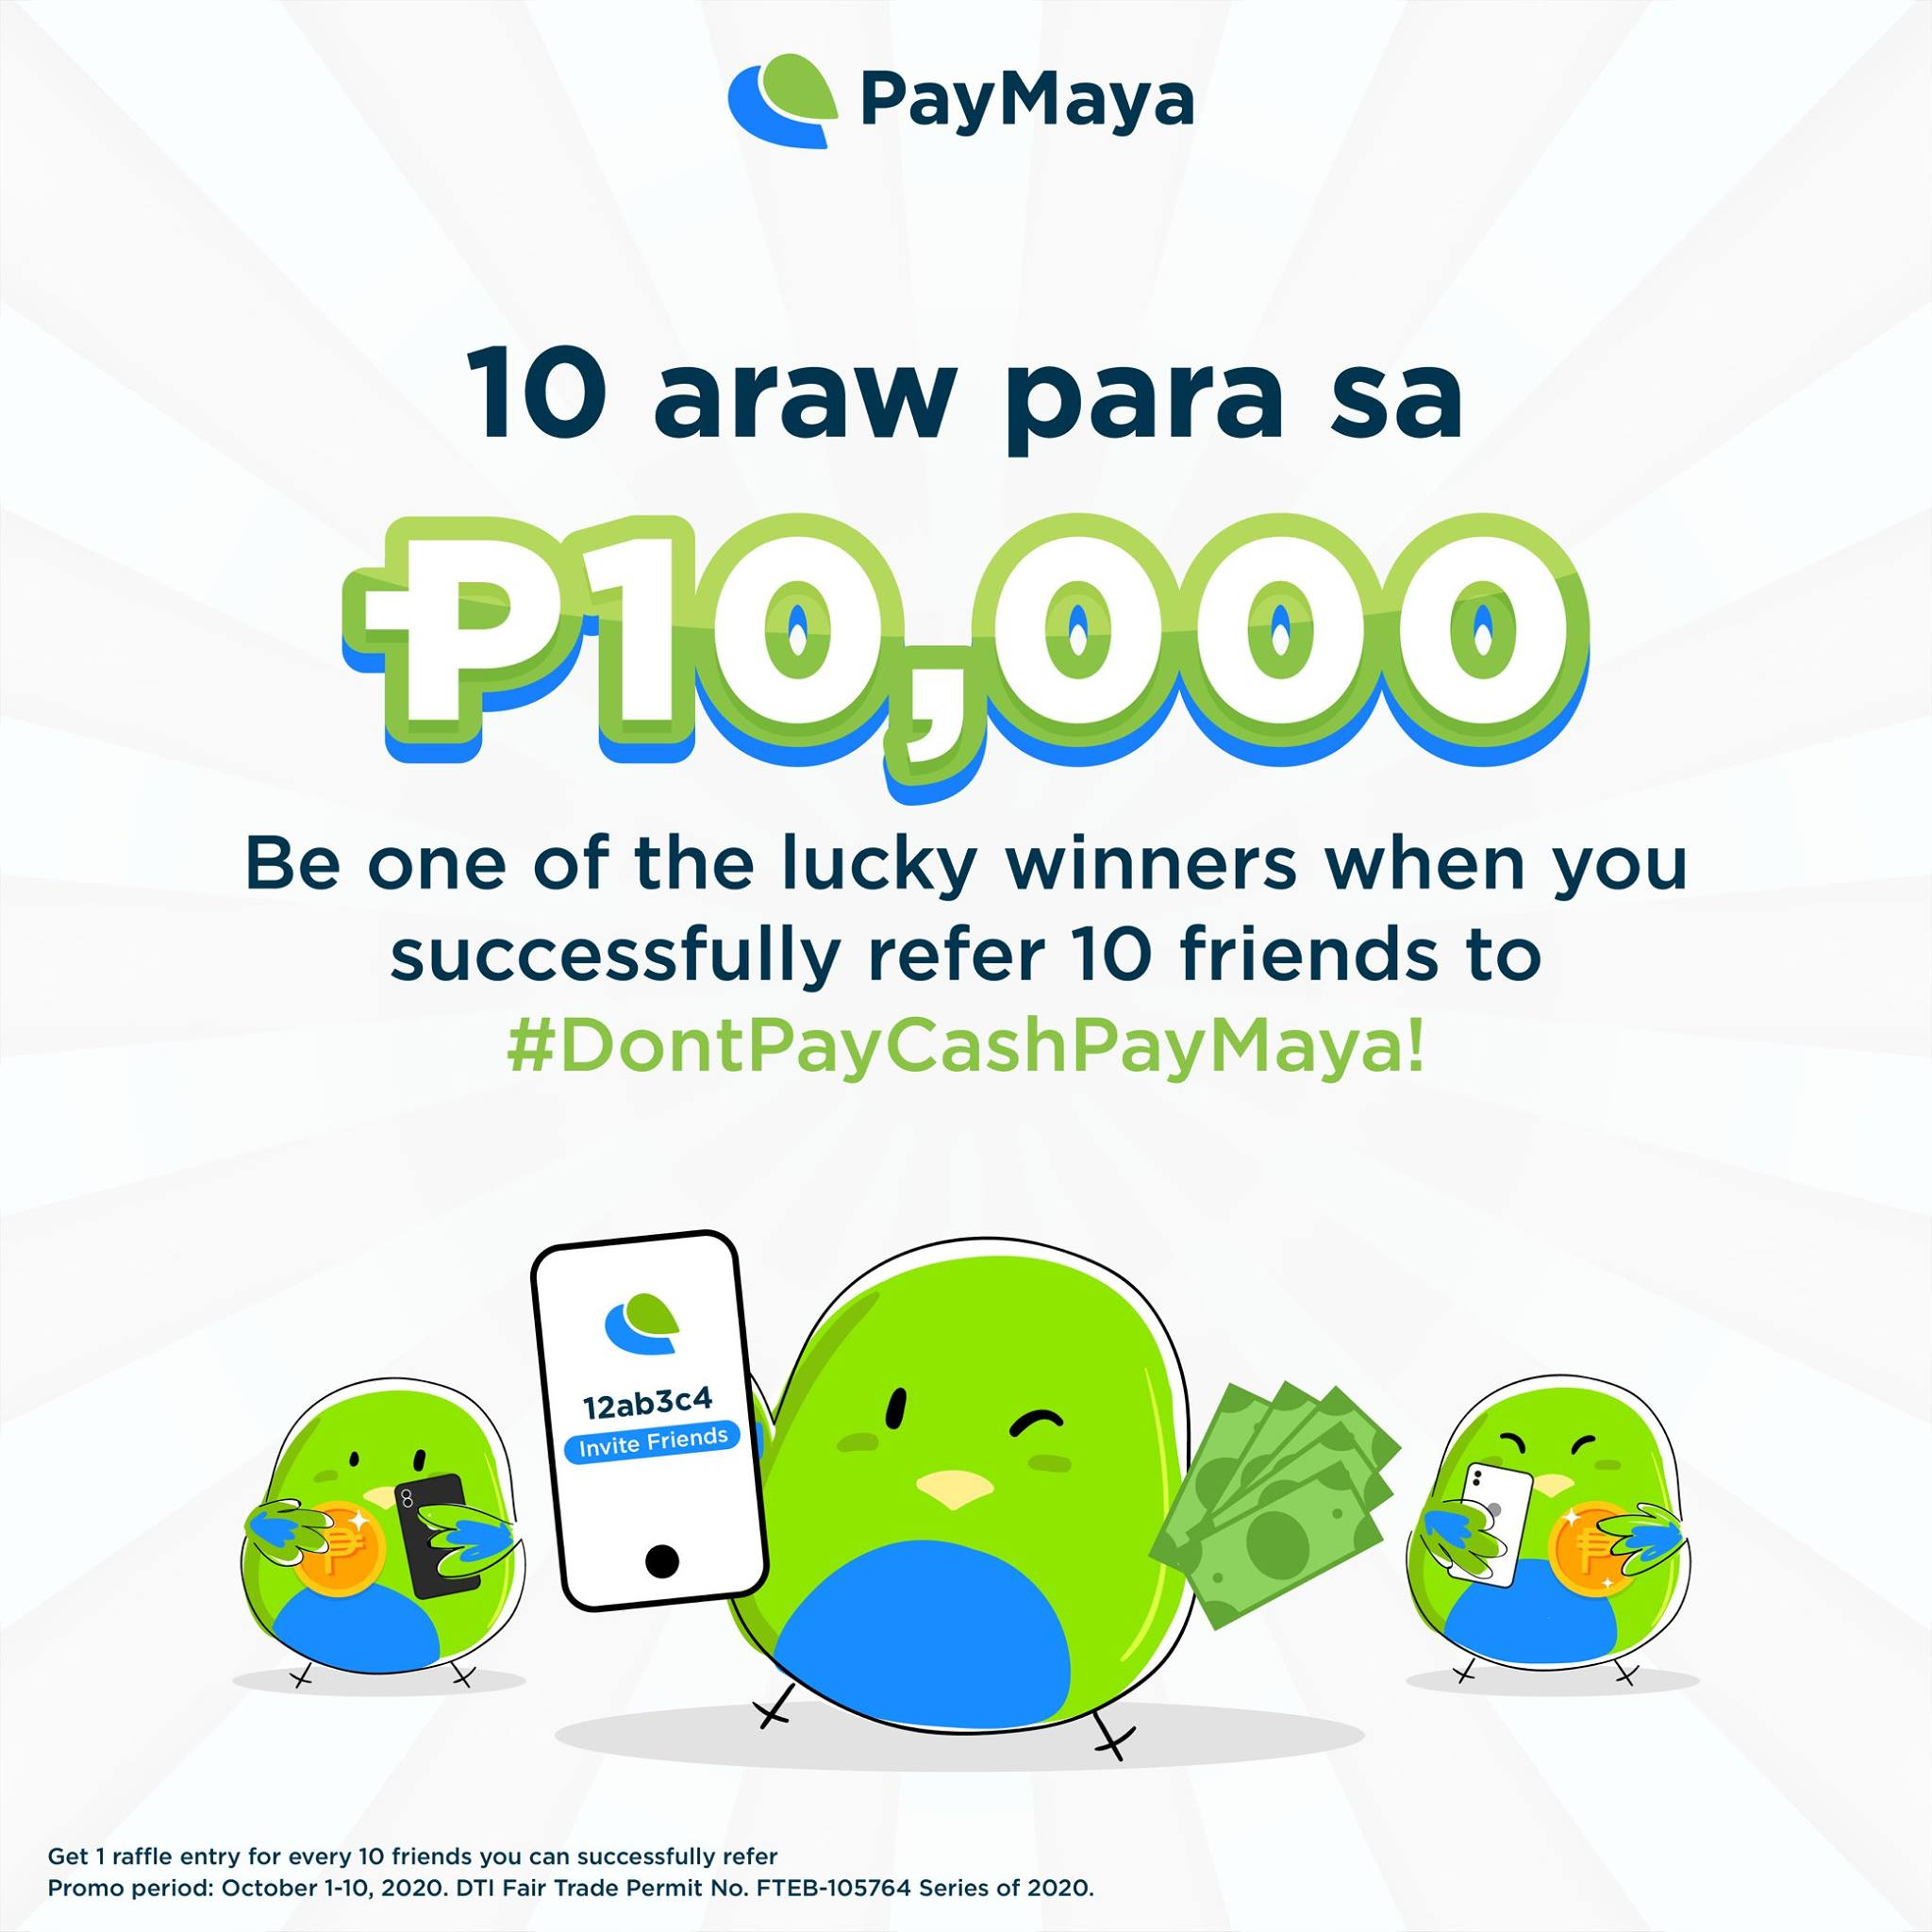 Register with PayMaya and earn a chance to win P10,000 this 10.10